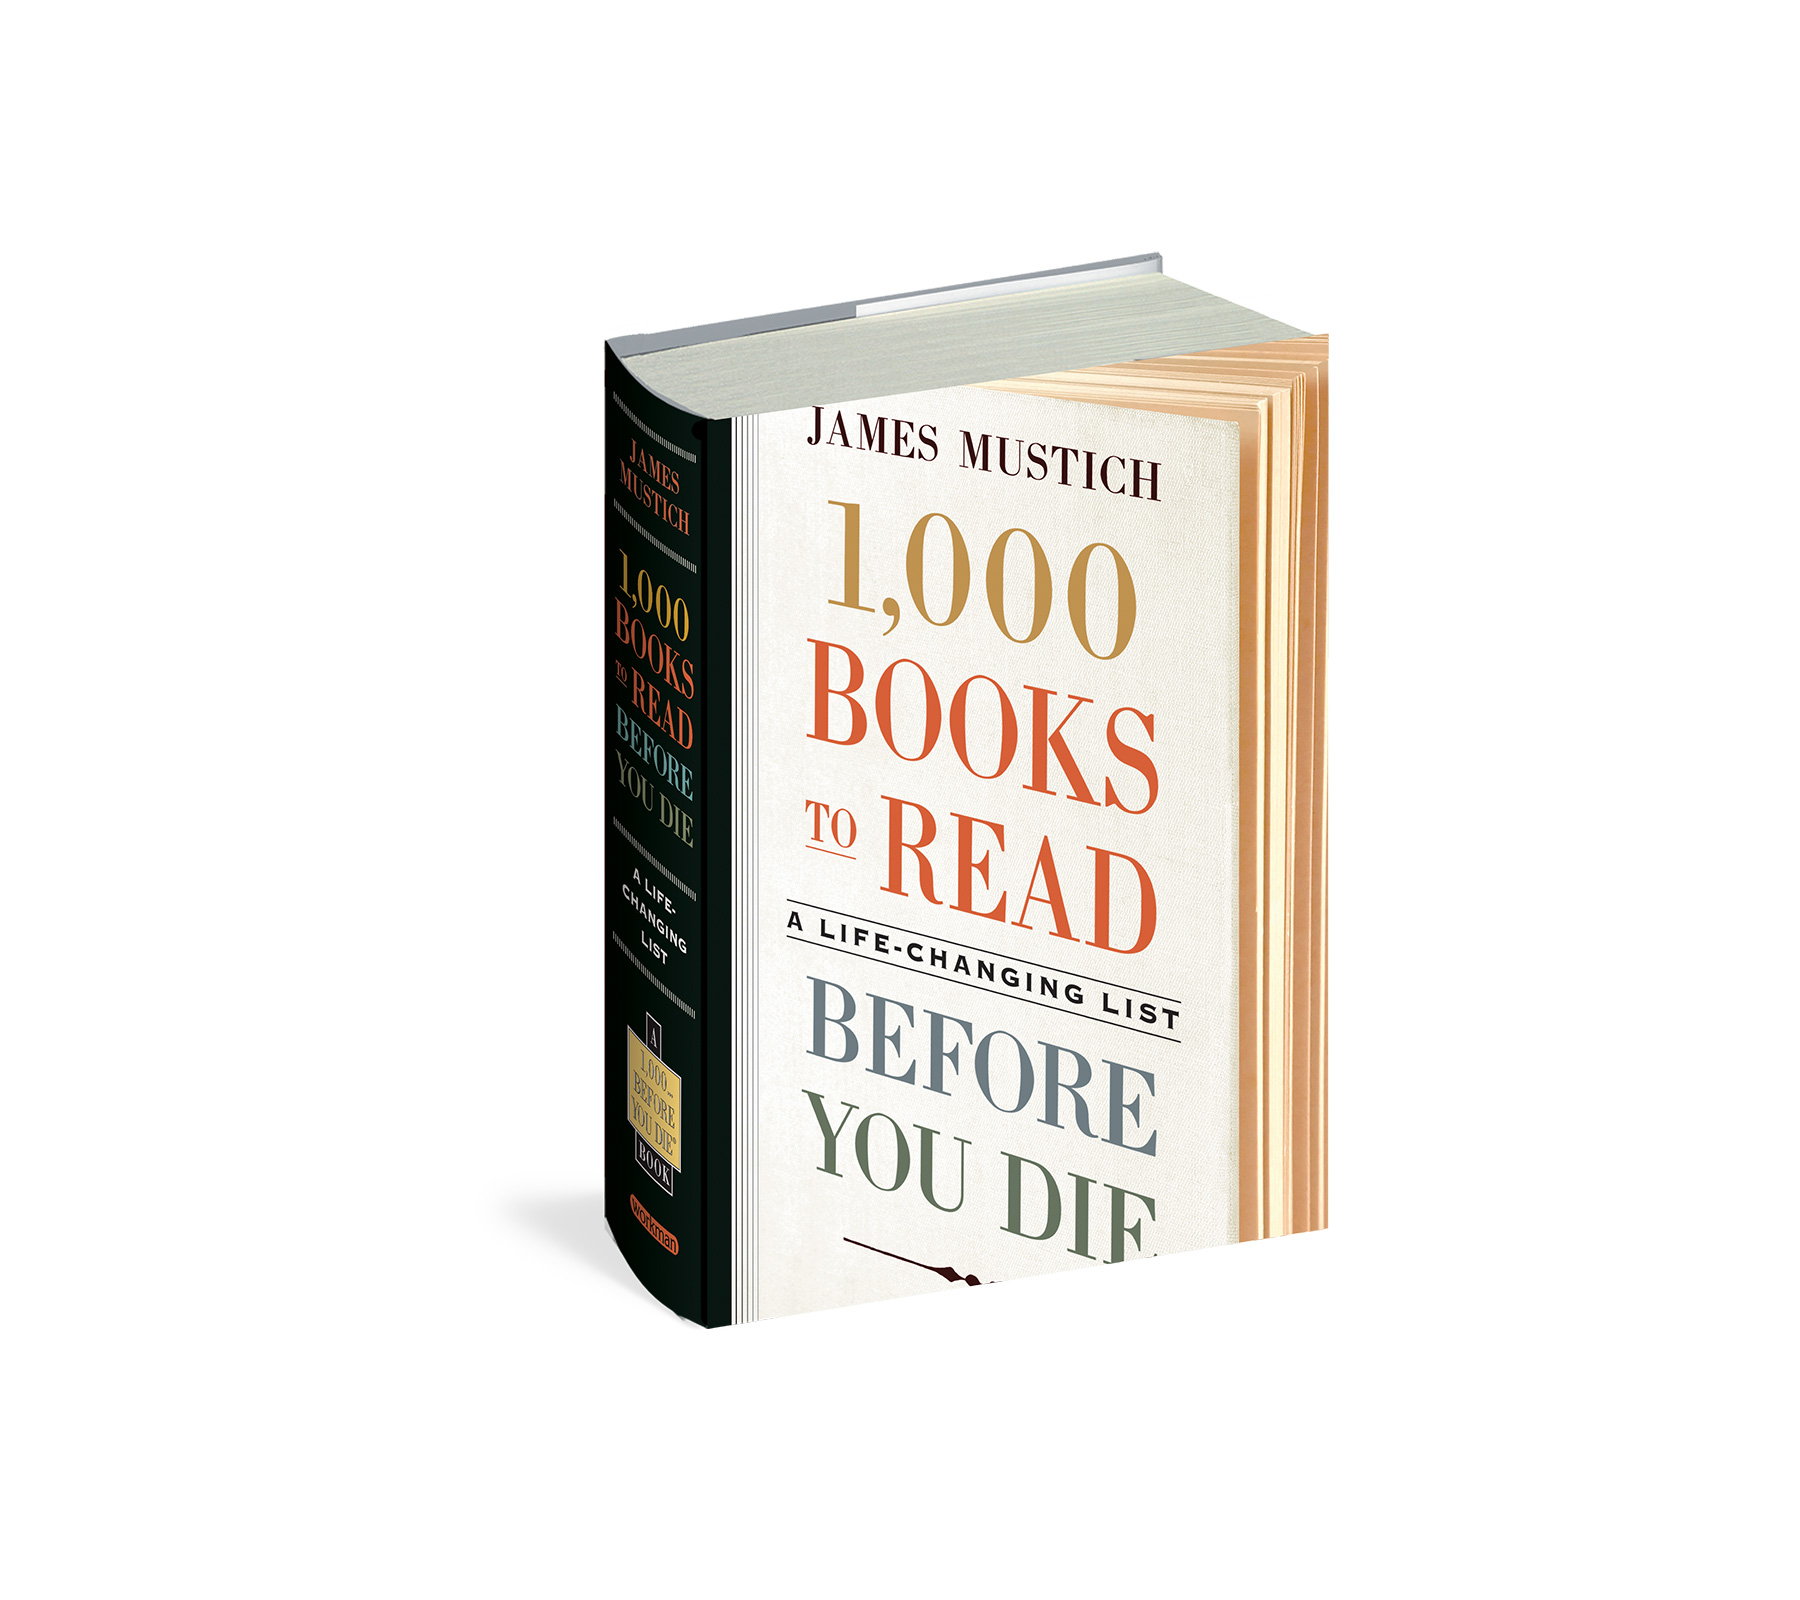 1,000 Books to Read Before You Die, by James Mustich